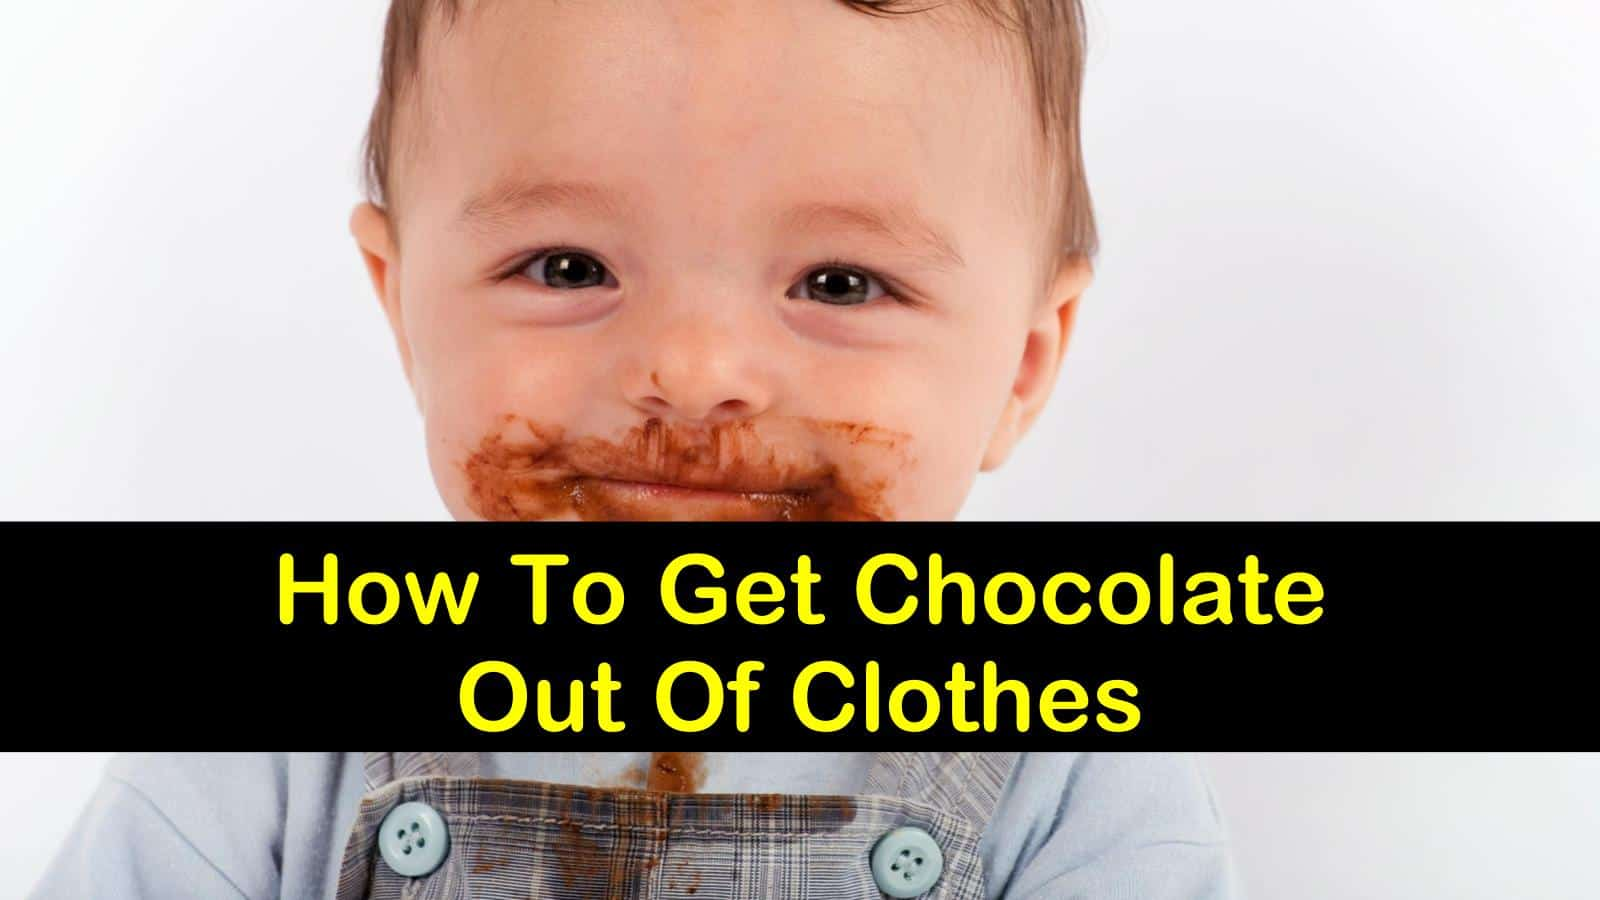 how to get chocolate out of clothes titlimg